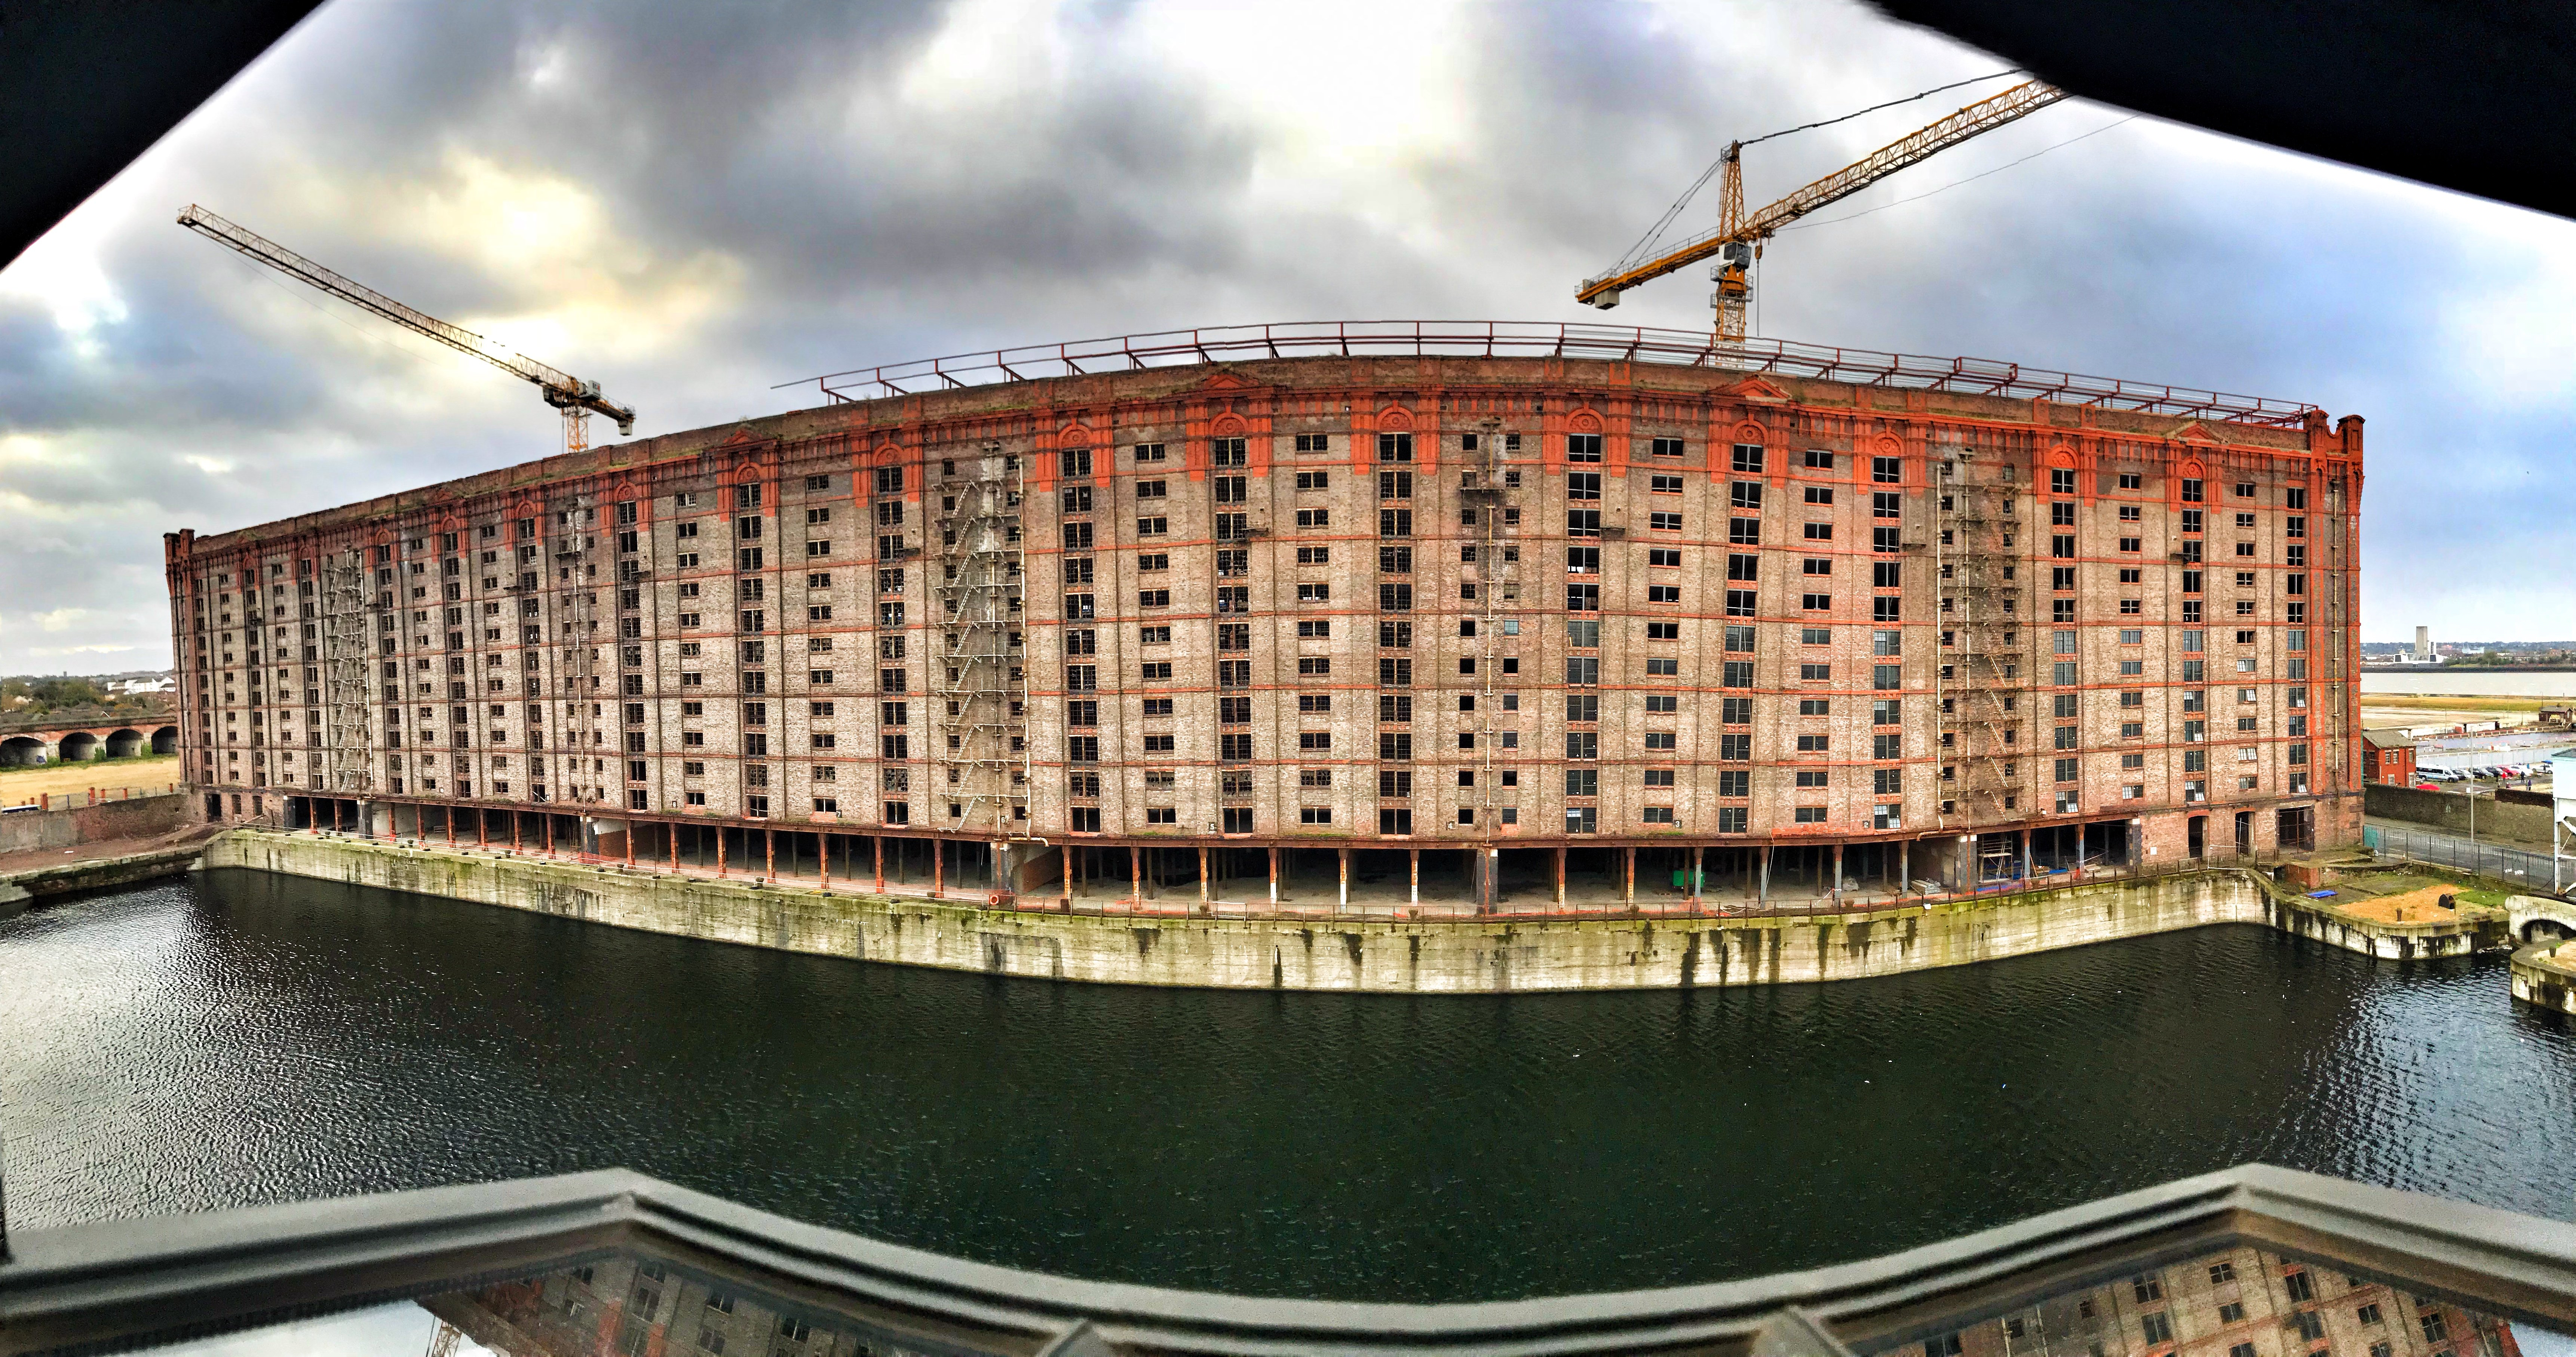 Titanic Hotel Liverpool Lyster Suite - view